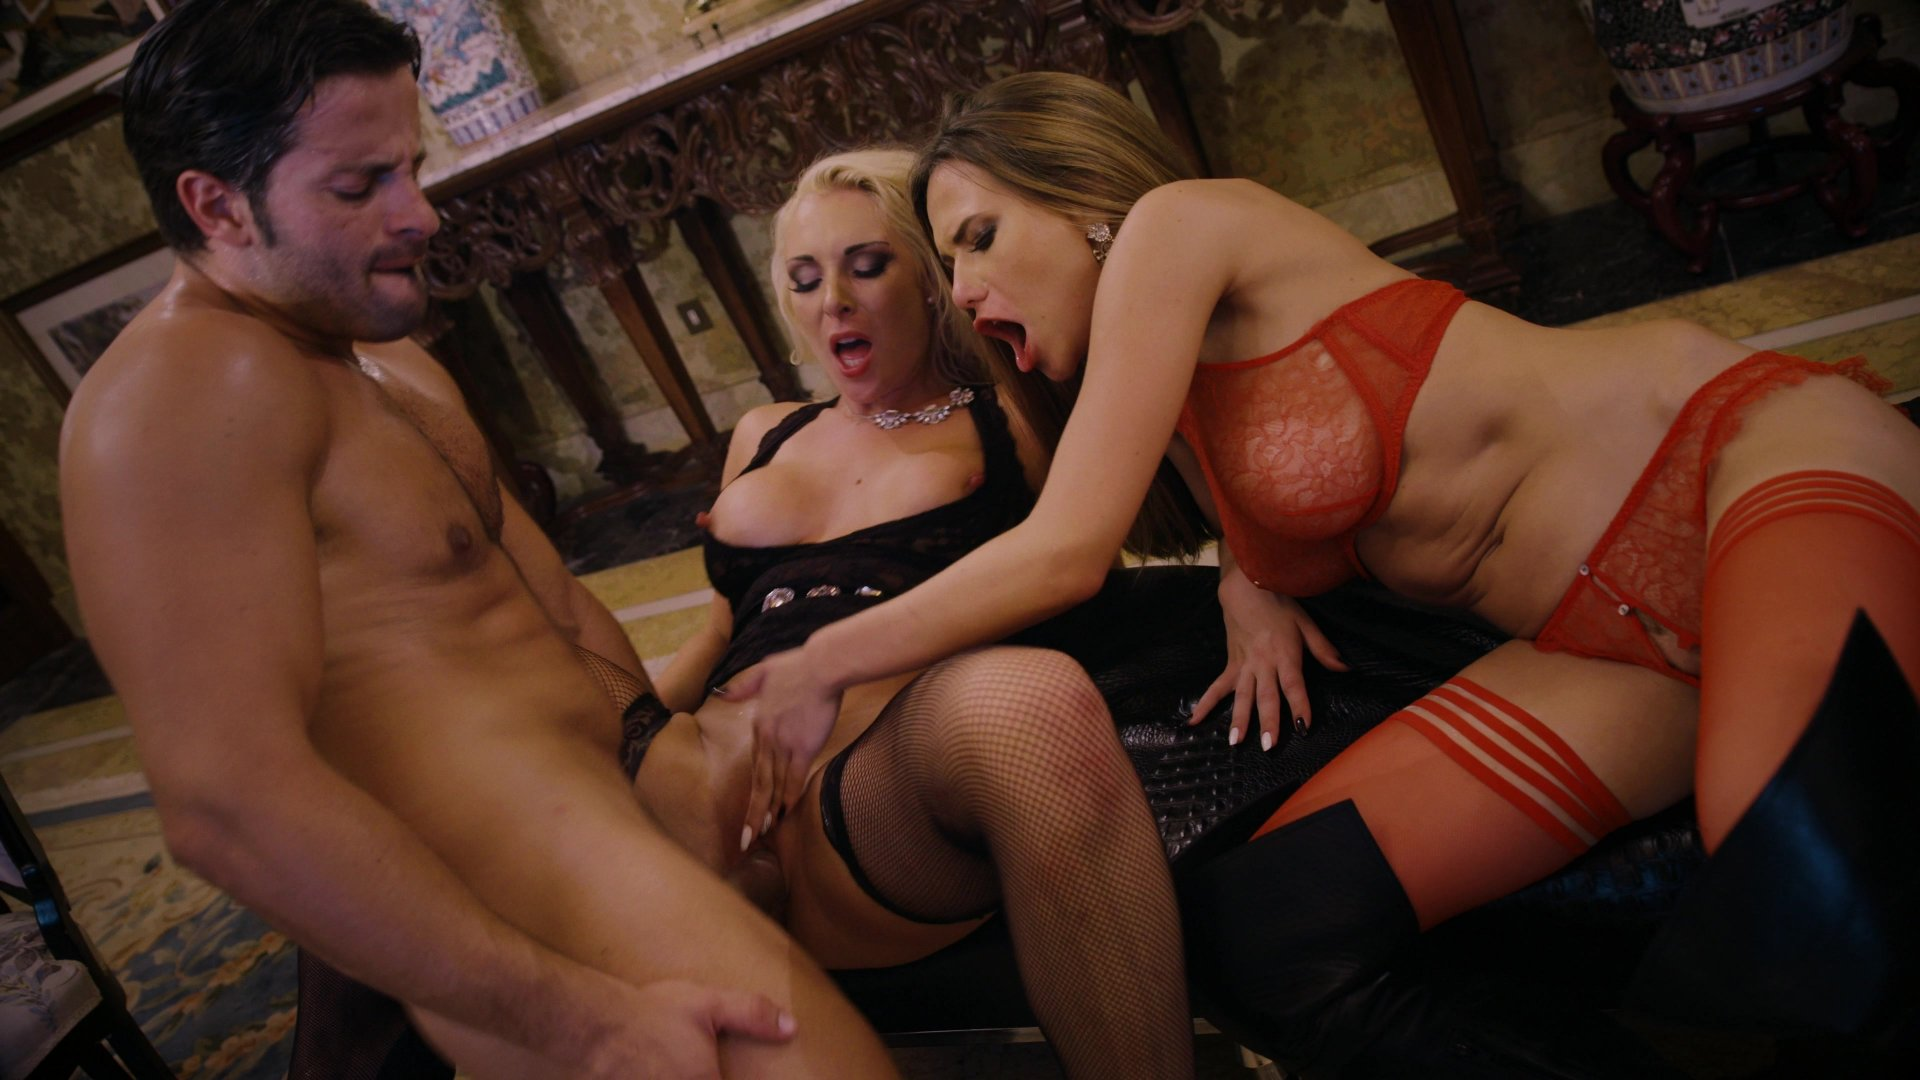 Opinion swinger and adult video wives wifes phrase